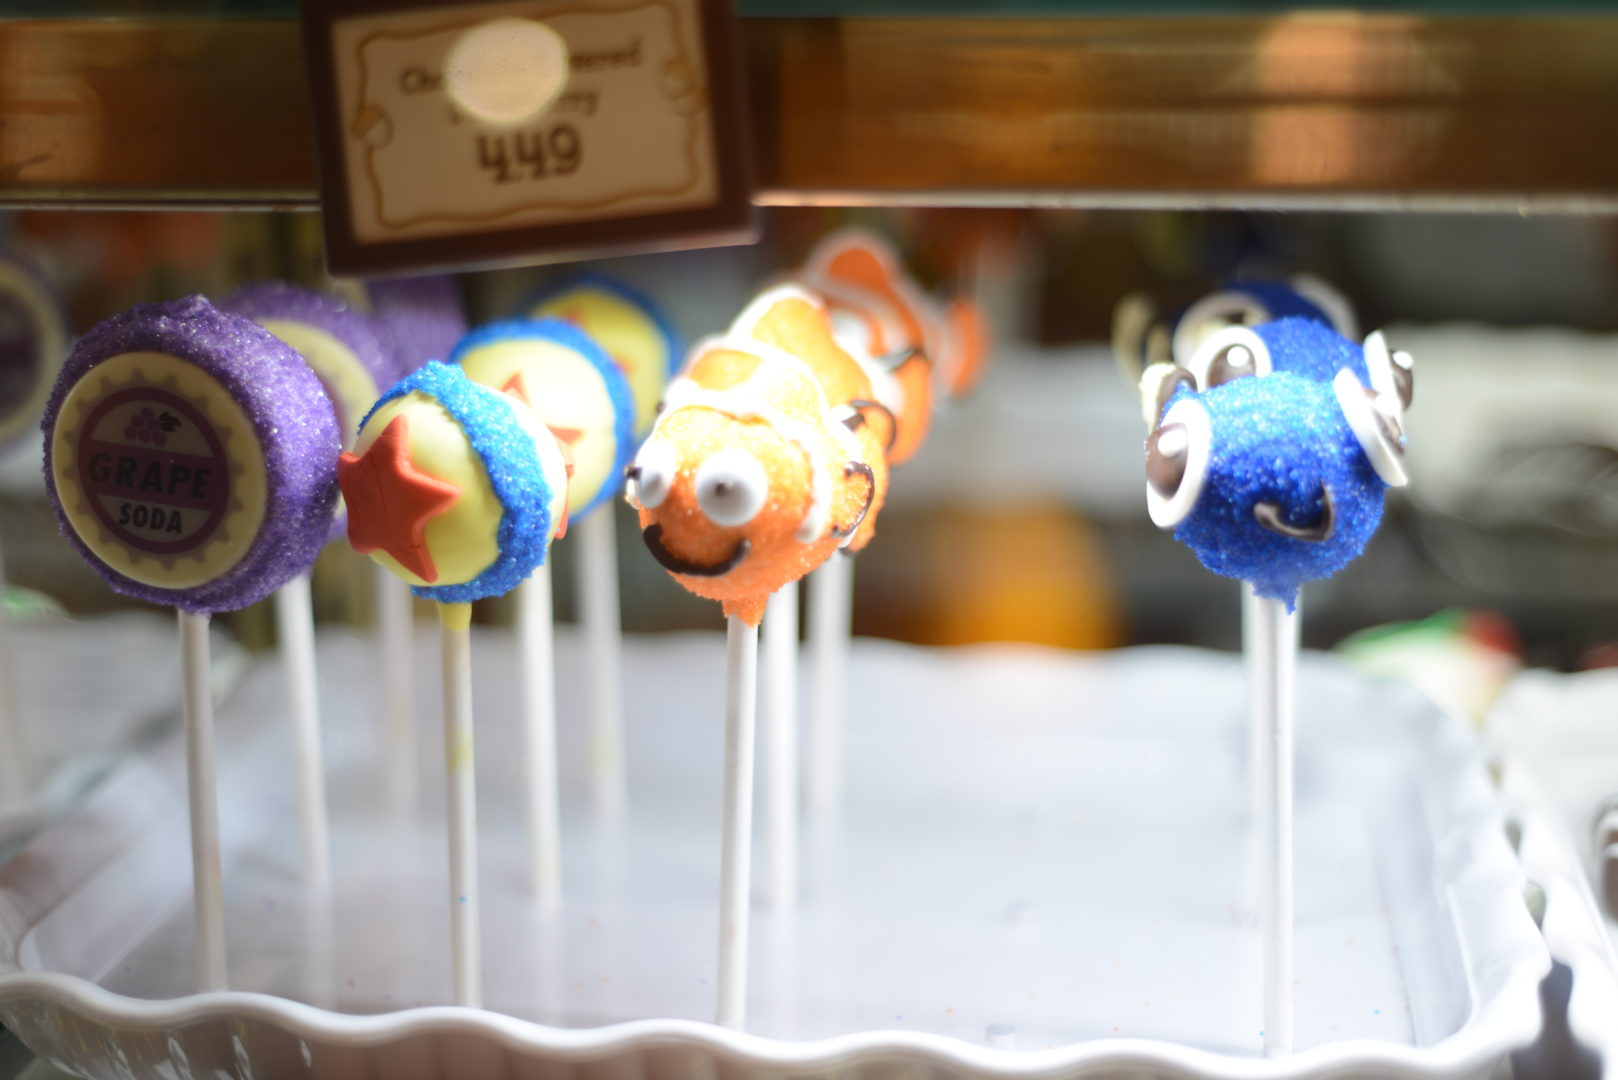 Finding Nemo and Luxo Pixar Cake Pops in a Display Case at Disneyland's Pixar Fest